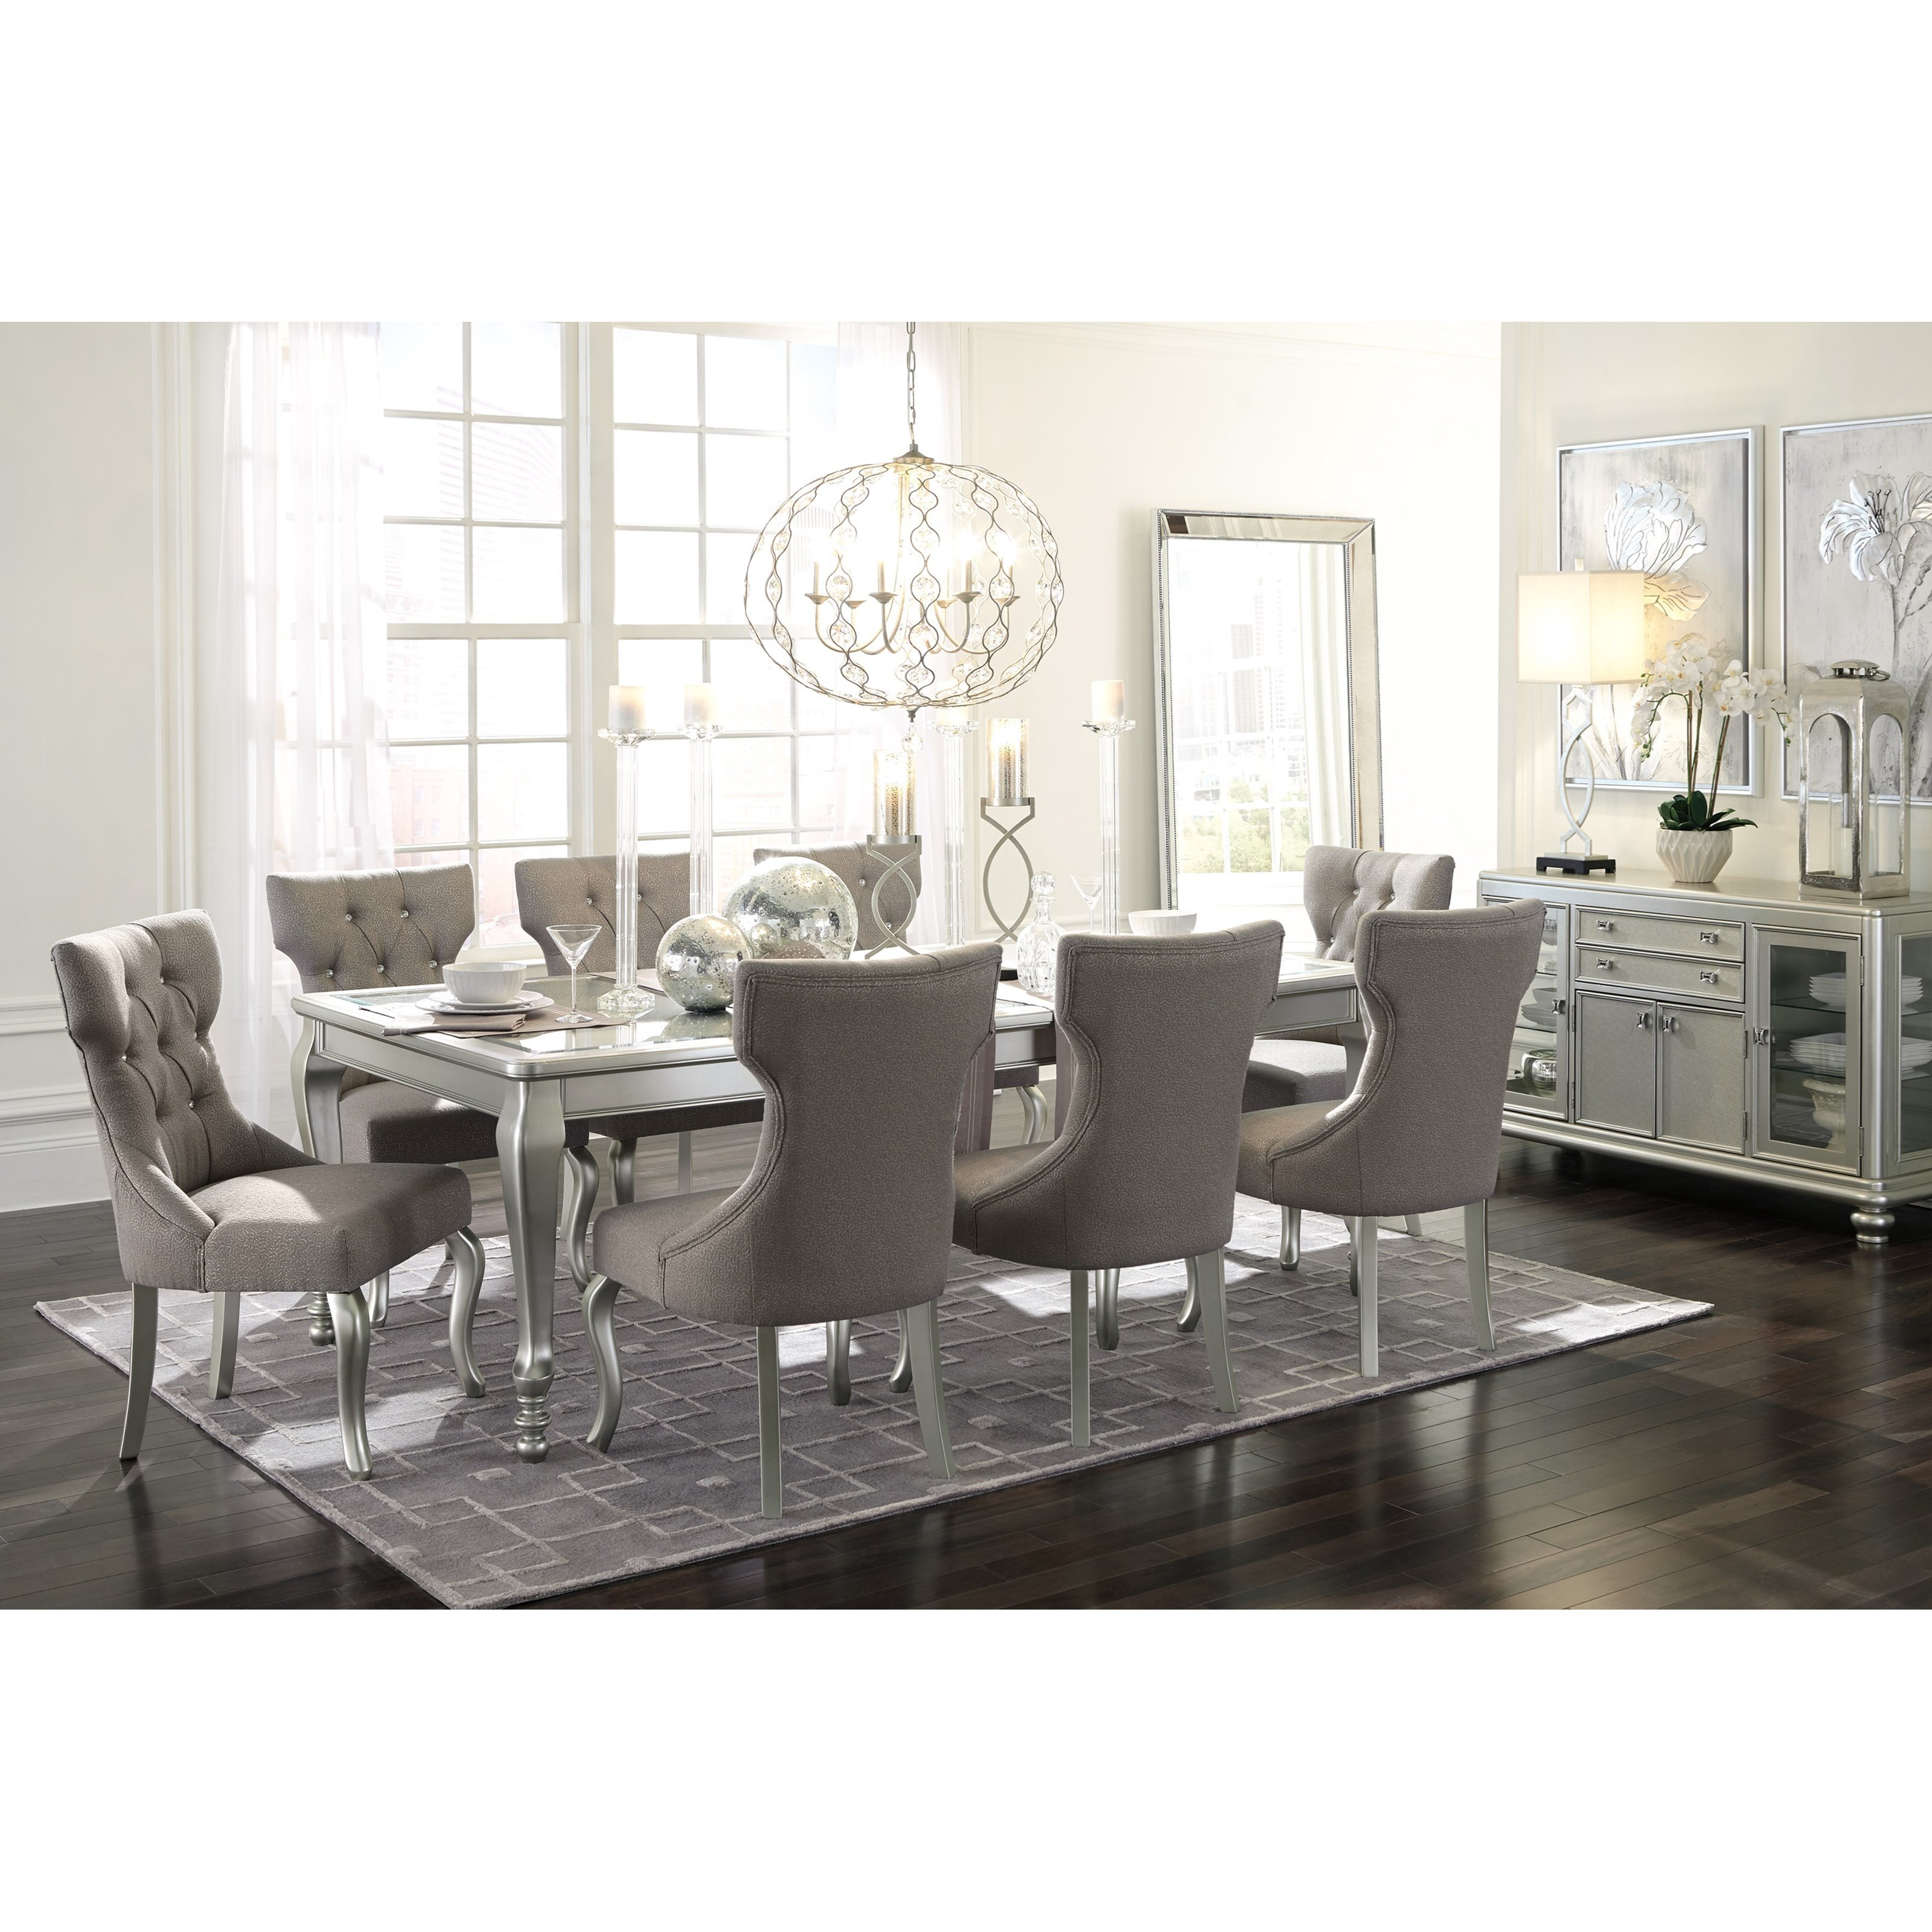 Dining Room Table Extension: Rectangular Dining Room Extension Table With Glass Inserts